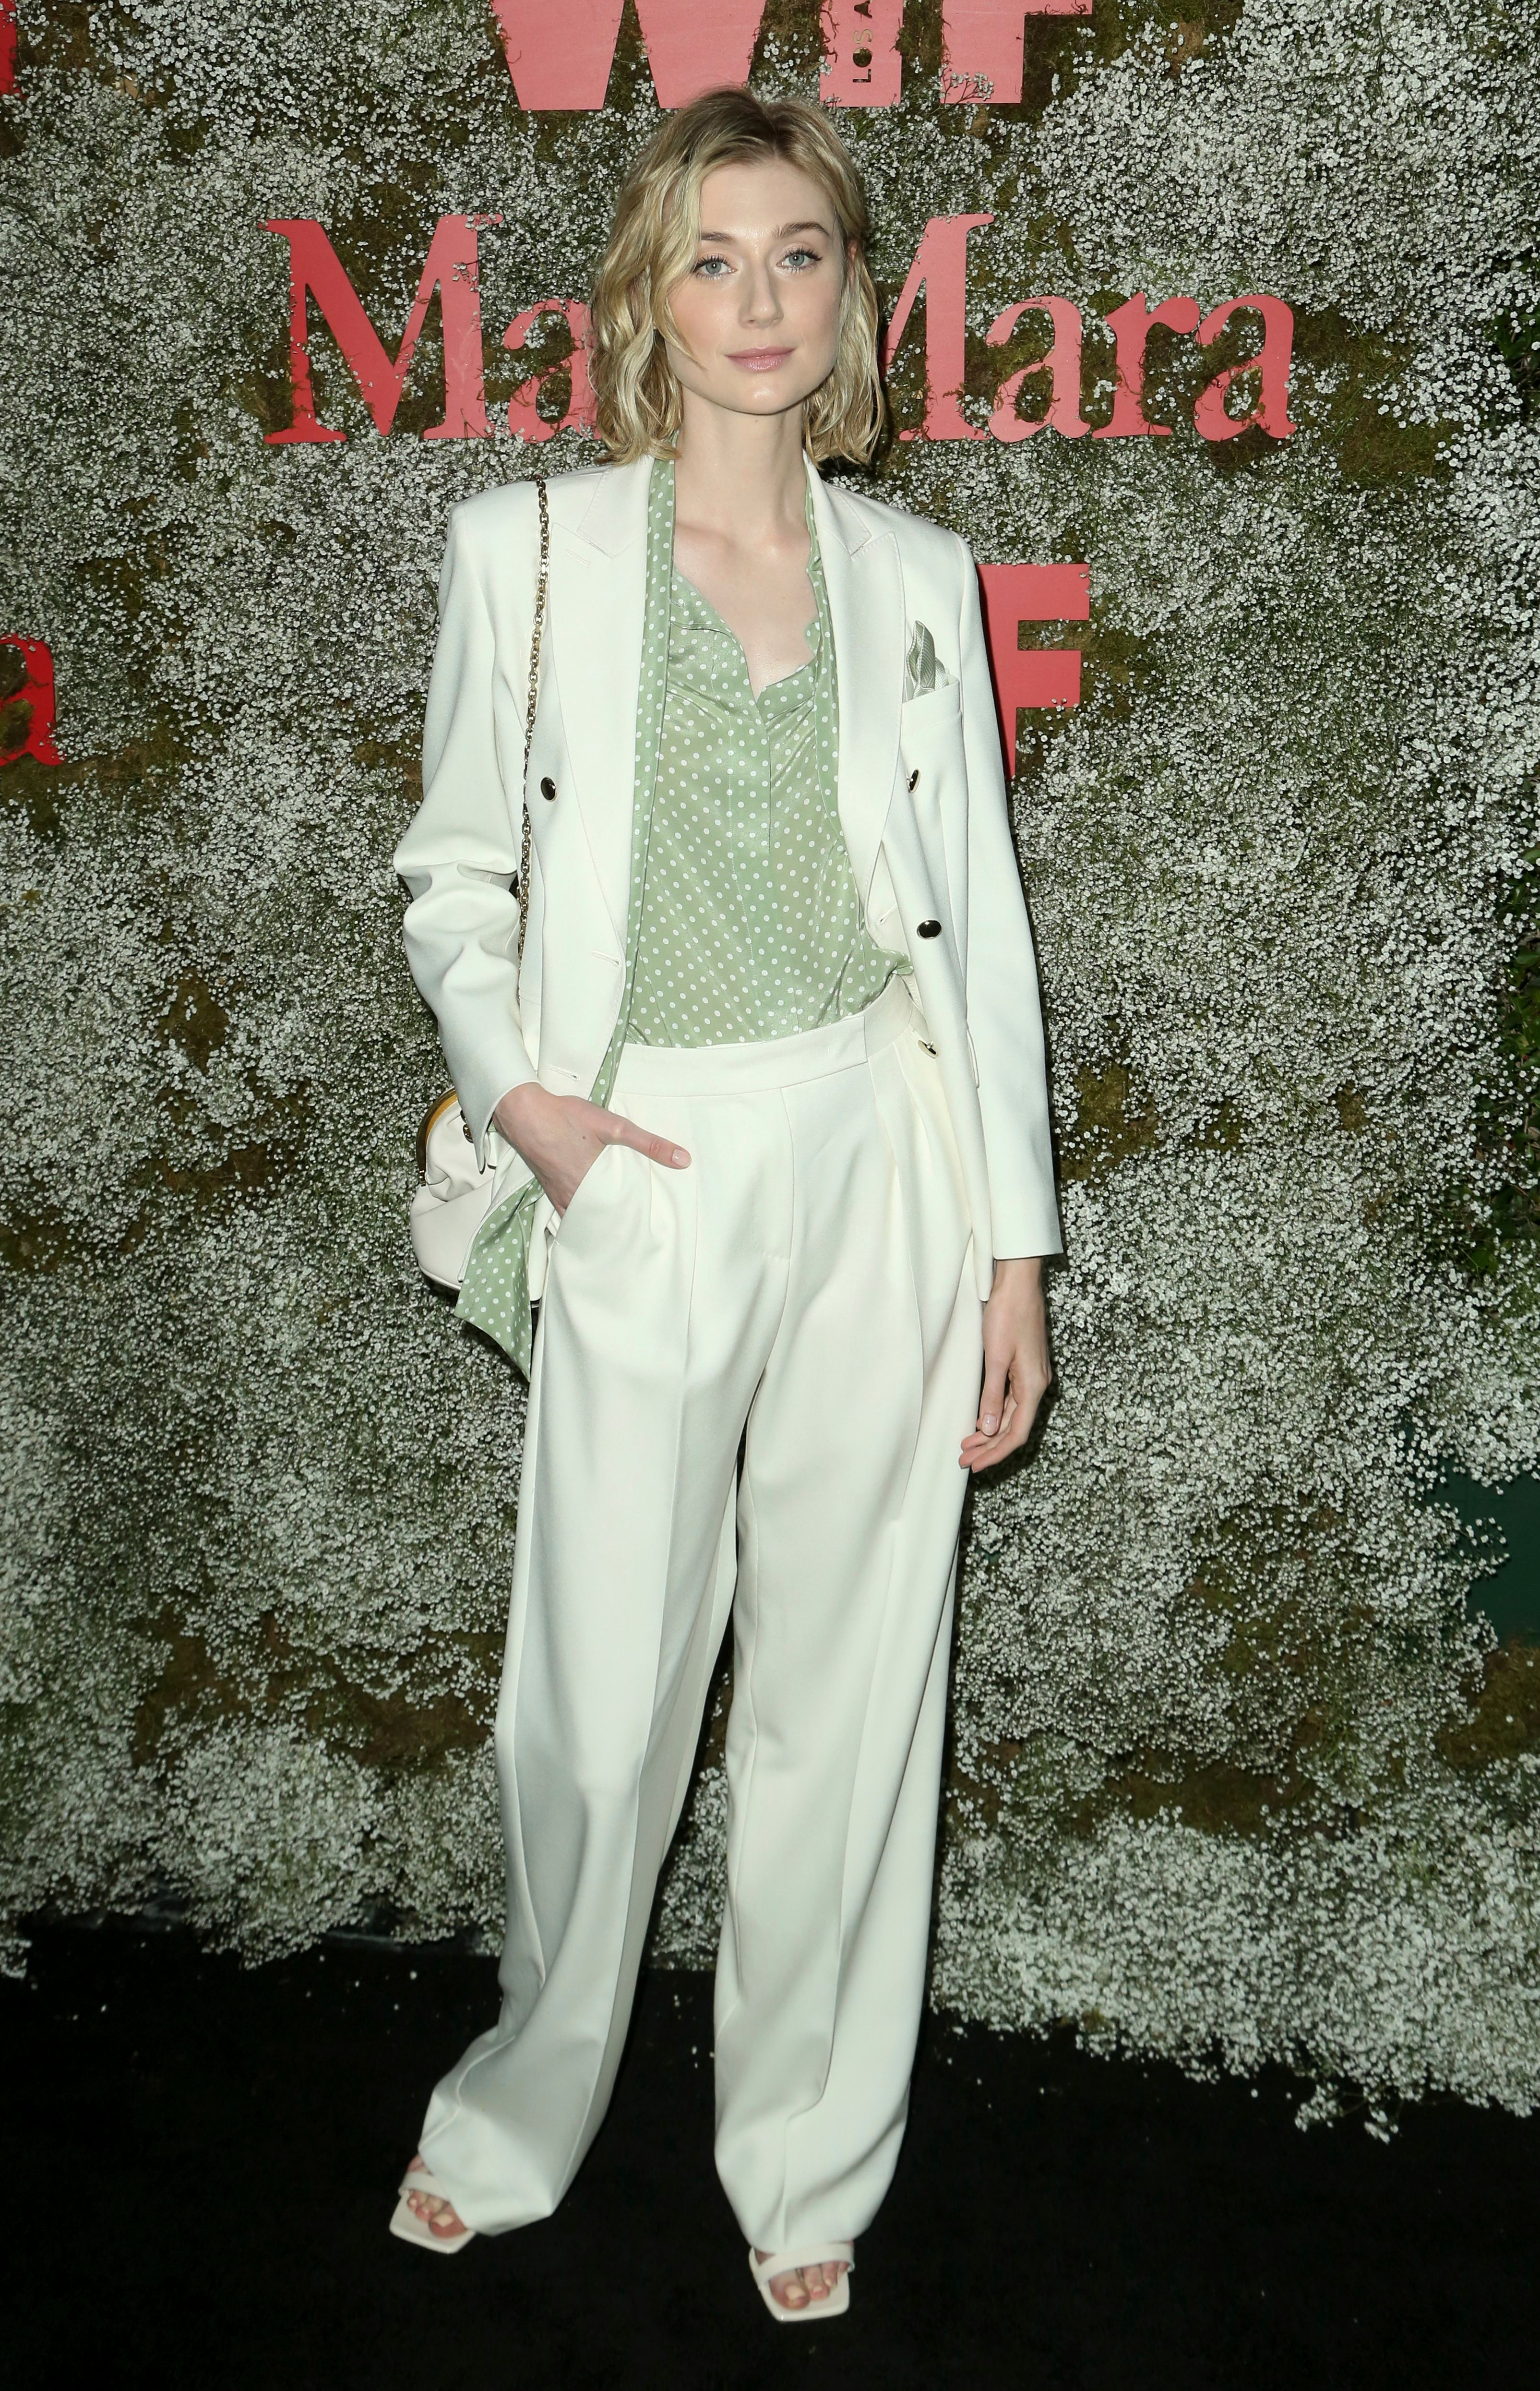 Elizabeth Debicki attends the 2019 InStyle Max Mara Women In Film Celebration at the Chateau Marmont, in Los Angeles2019 InStyle Max Mara Women In Film Celebration, West Hollywood, USA - 11 Jun 2019